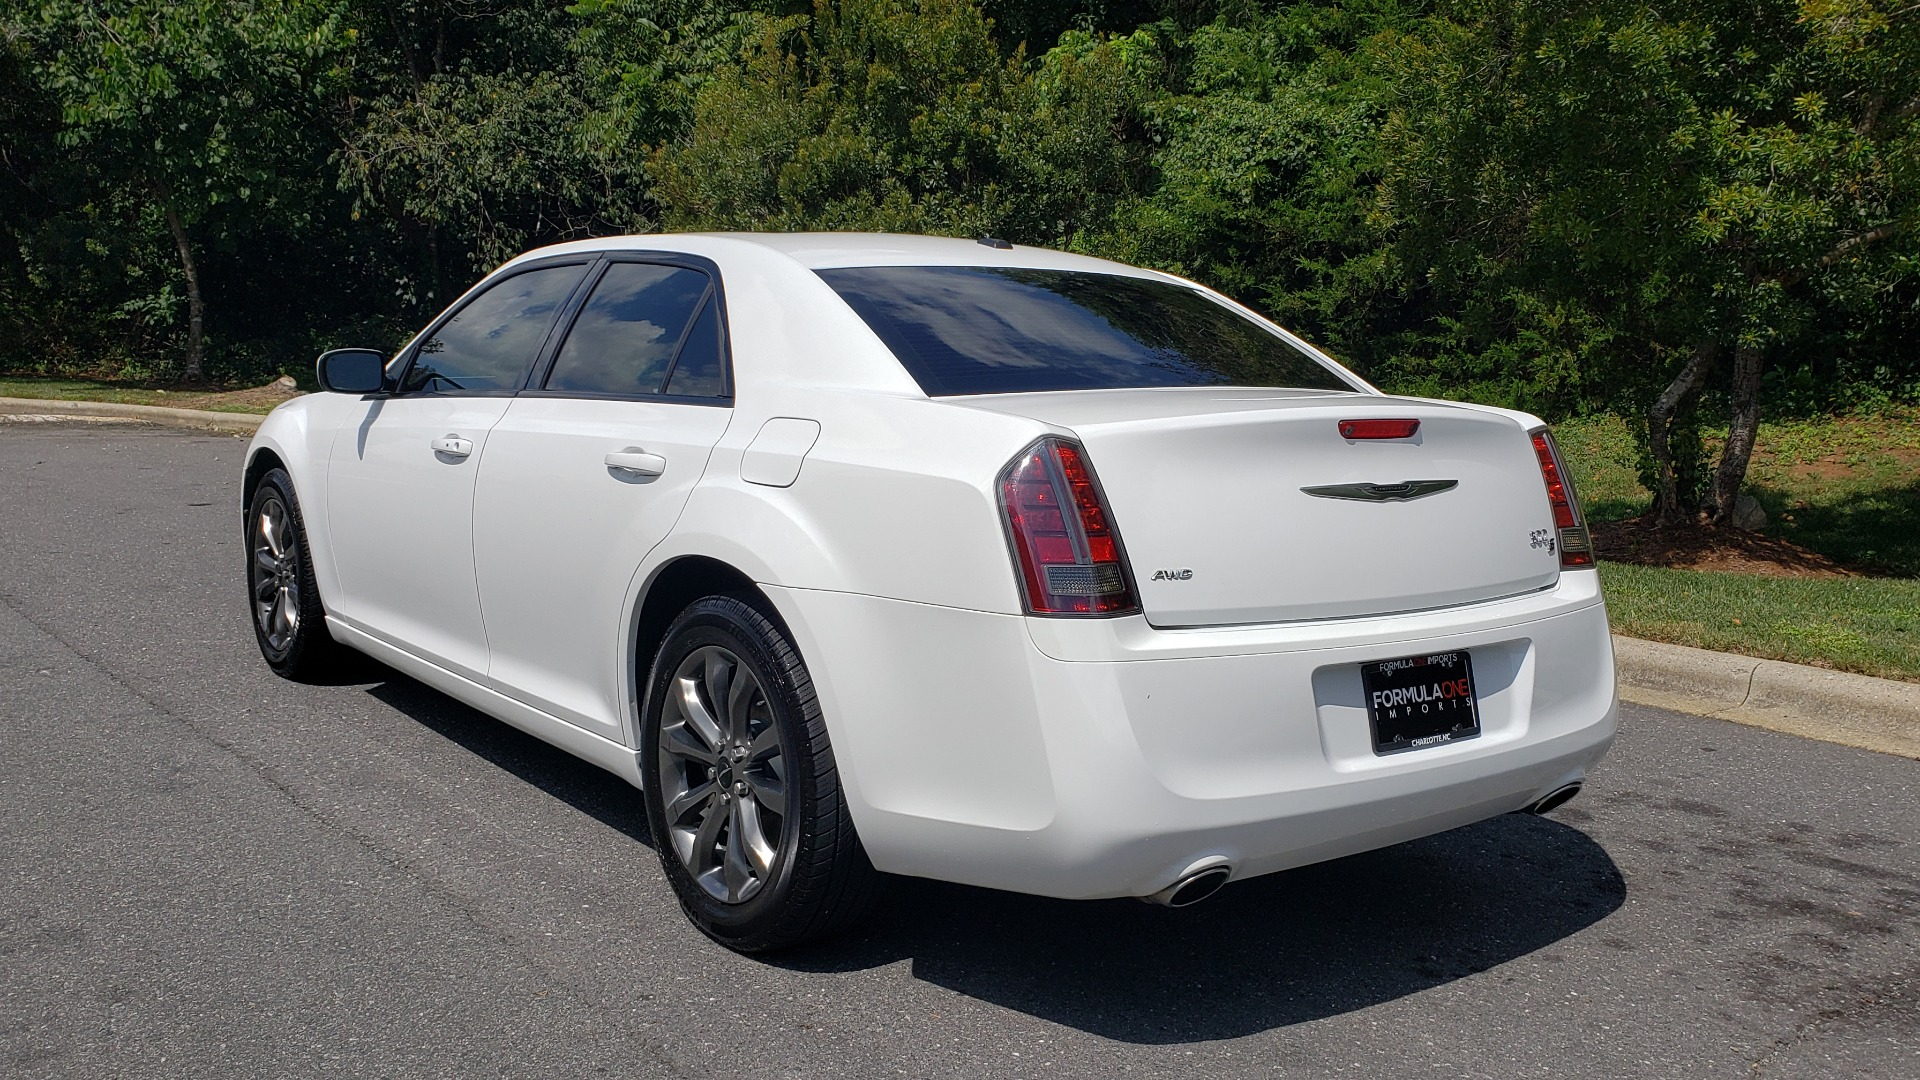 Used 2014 Chrysler 300 S / AWD / NAV / PANO-ROOF / HTD STS / BEATS SOUND / REARVIEW for sale Sold at Formula Imports in Charlotte NC 28227 3